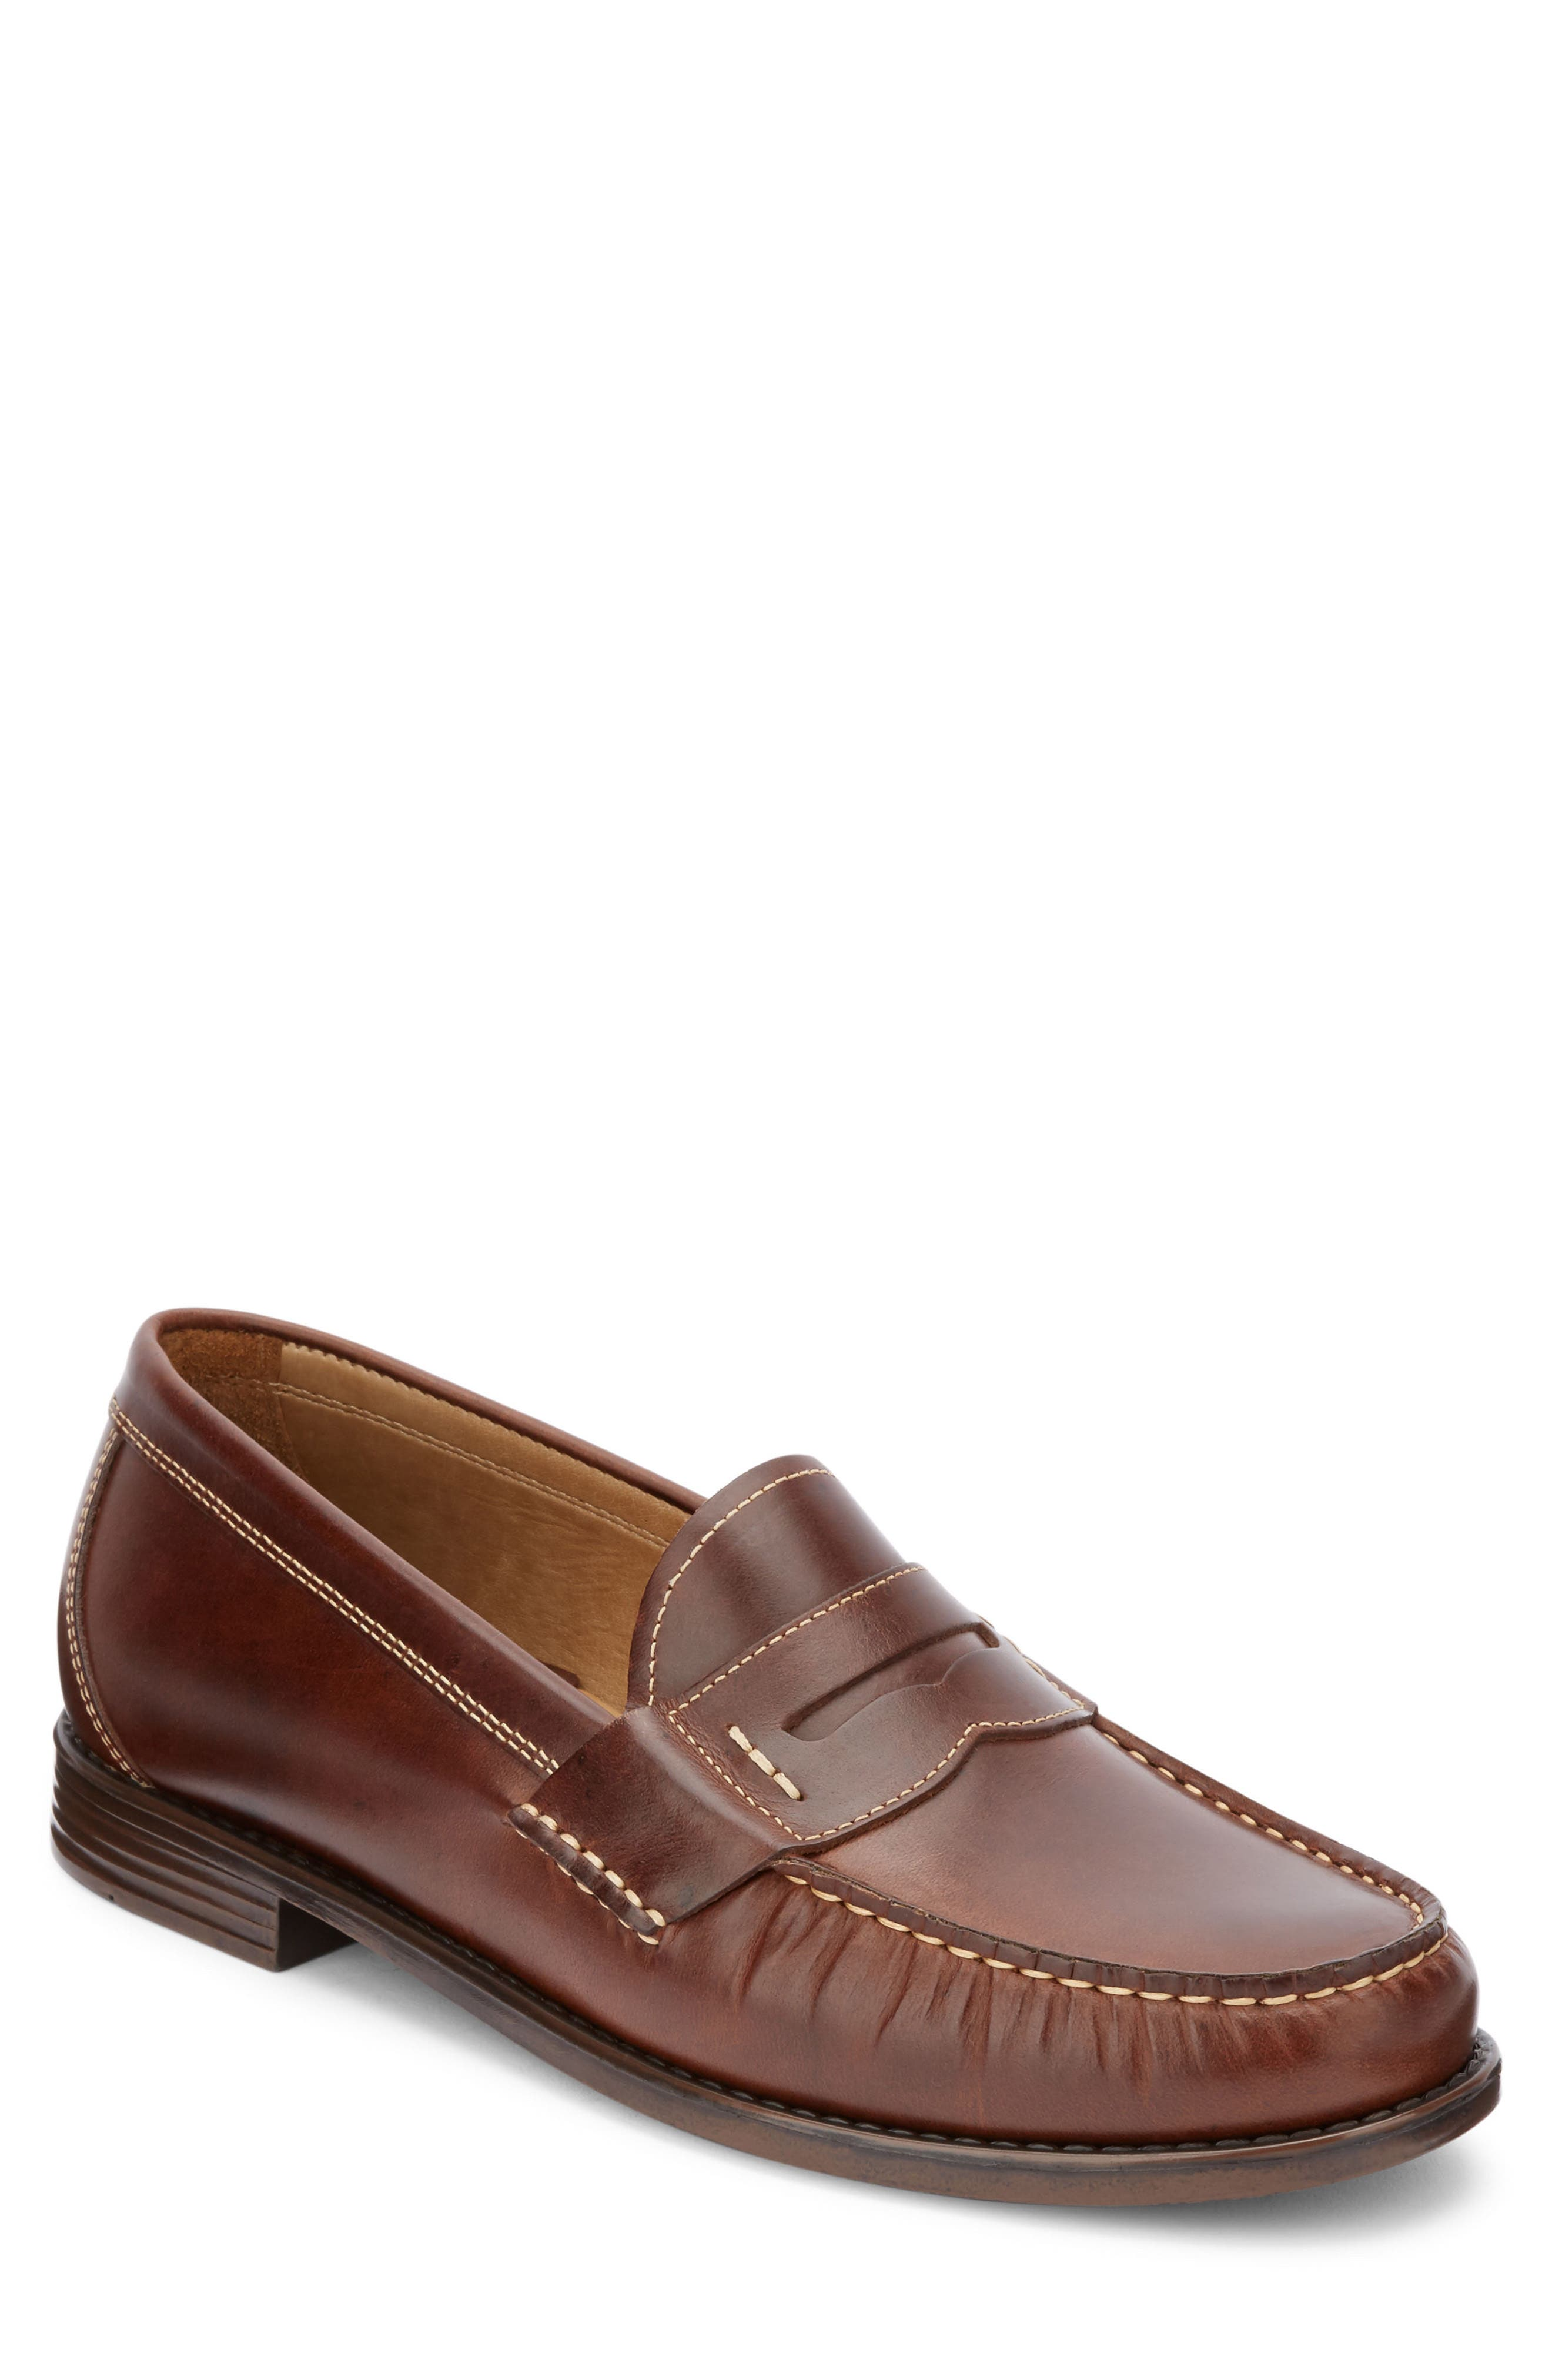 Wagner Penny Loafer,                             Main thumbnail 1, color,                             DARK BROWN LEATHER